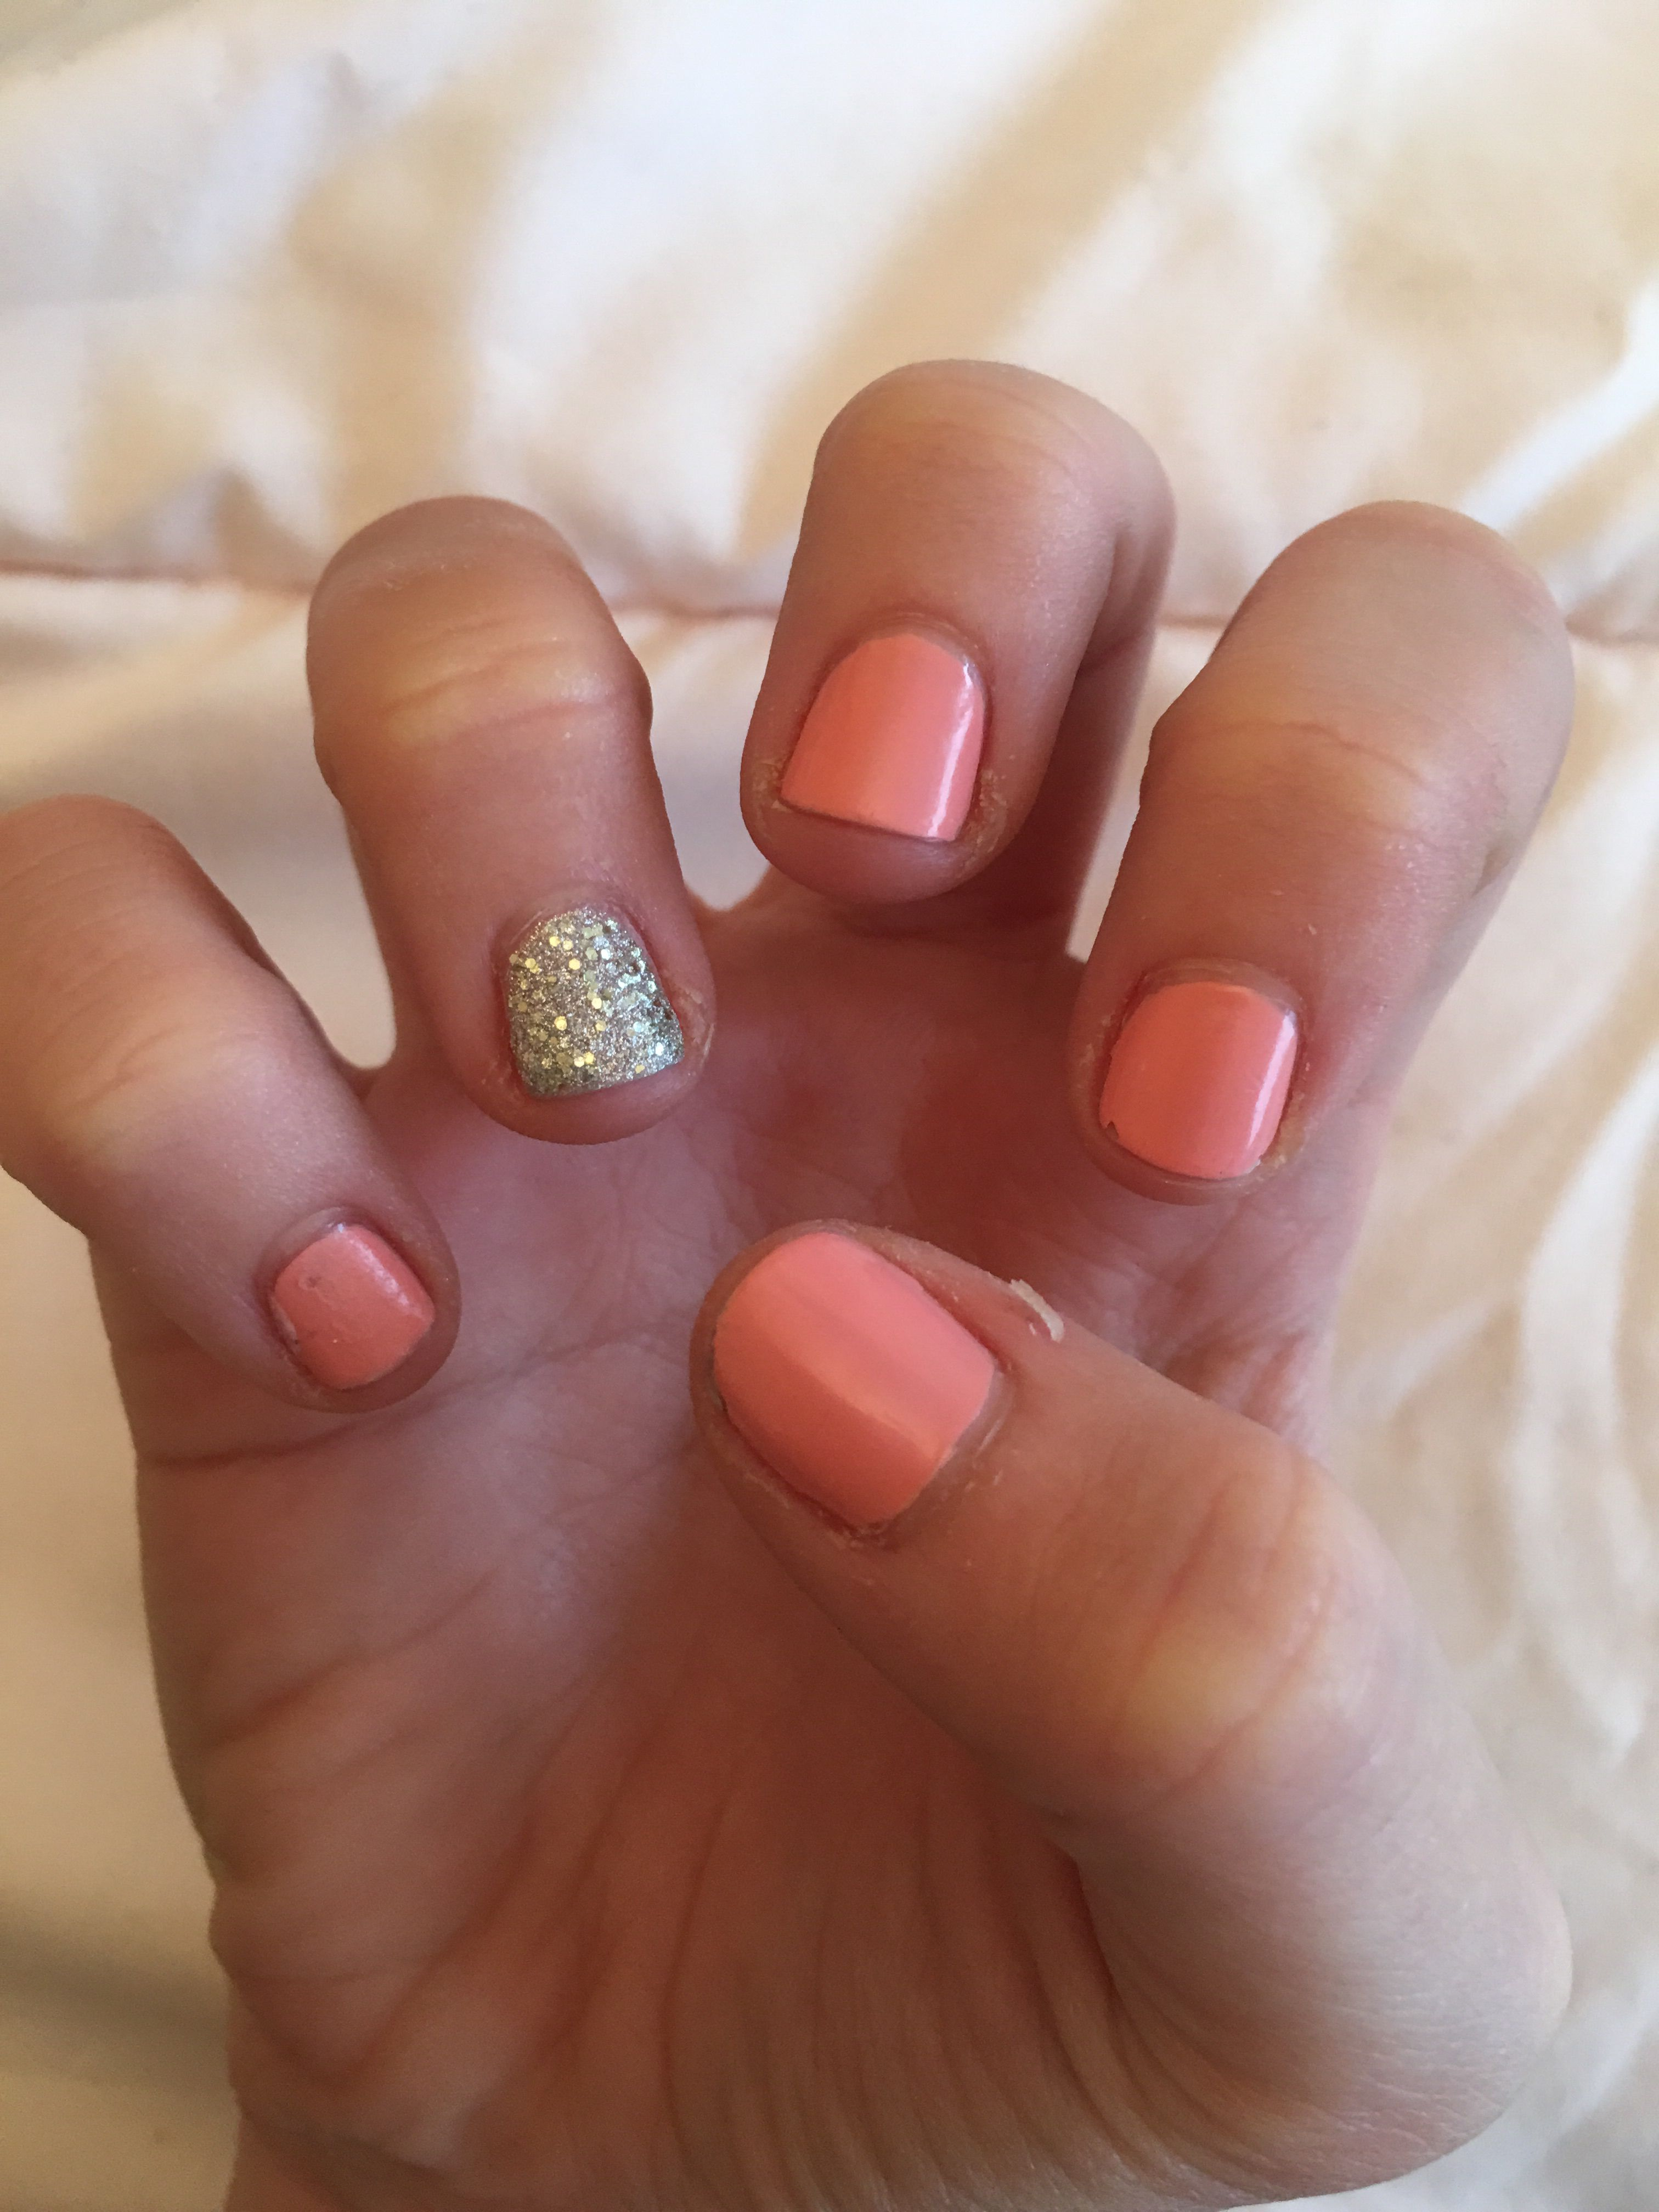 Love My New Nails So Cheap And I M Feeling The Summer Vibes These Are Normal Nail Polish But Feels Like Gel Short Nails X Nails Nail Polish Short Nails